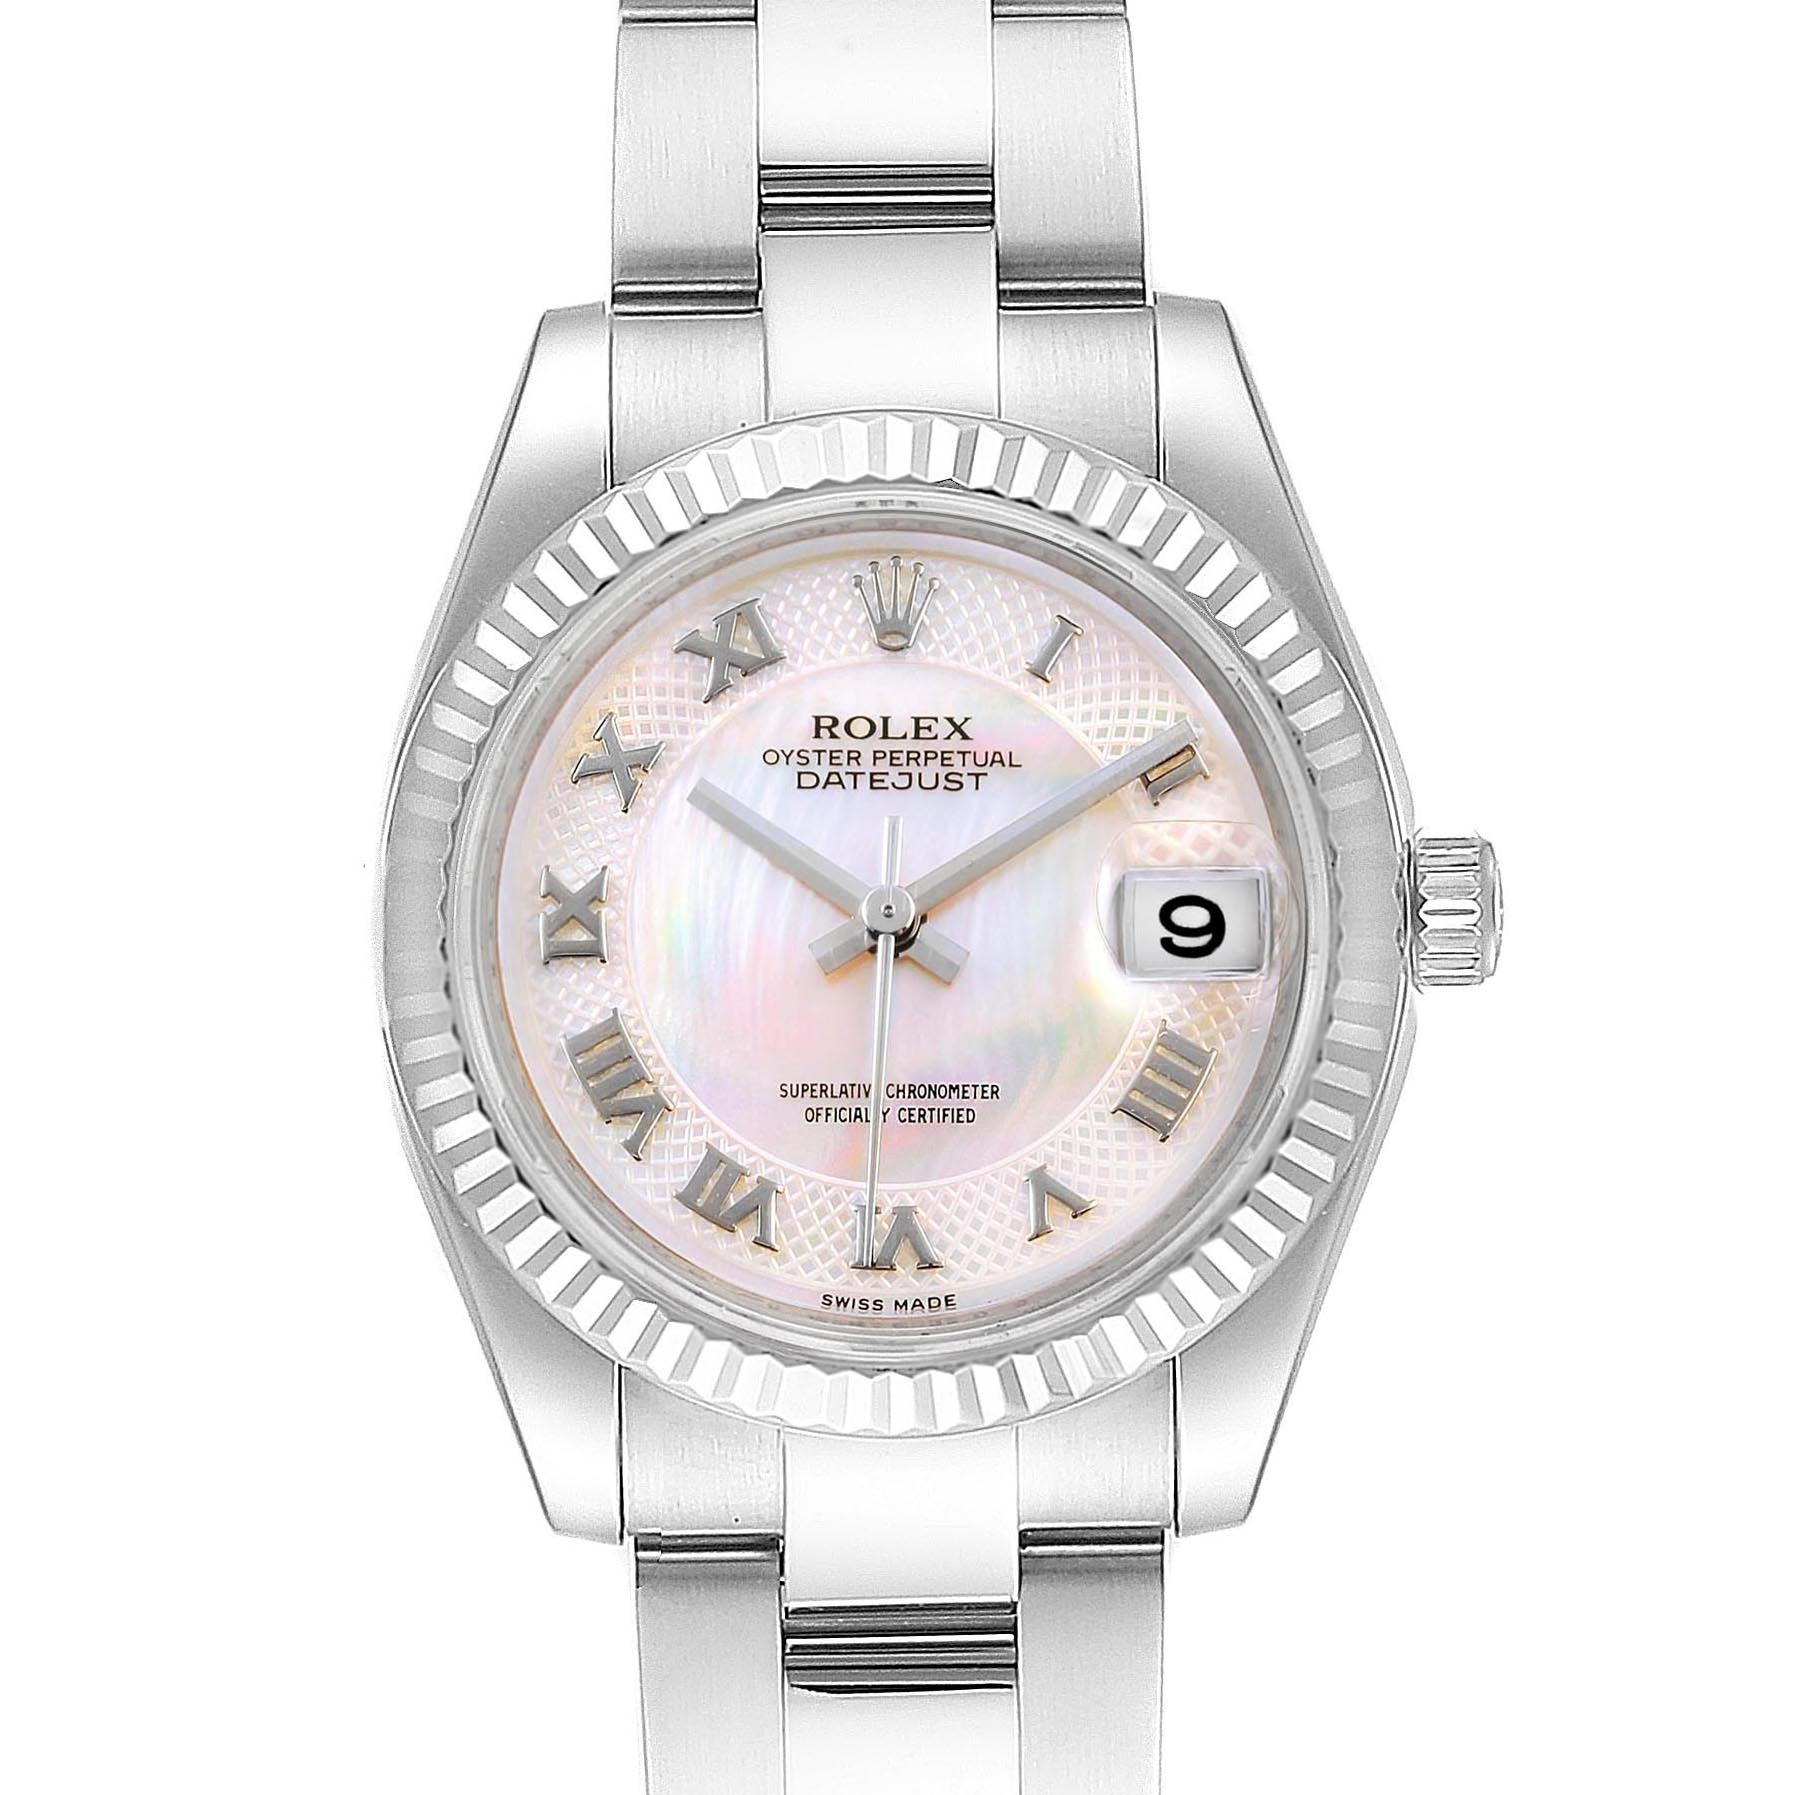 Rolex Datejust Midsize Steel White Gold MOP Dial Ladies Watch 178274 Box Card SwissWatchExpo